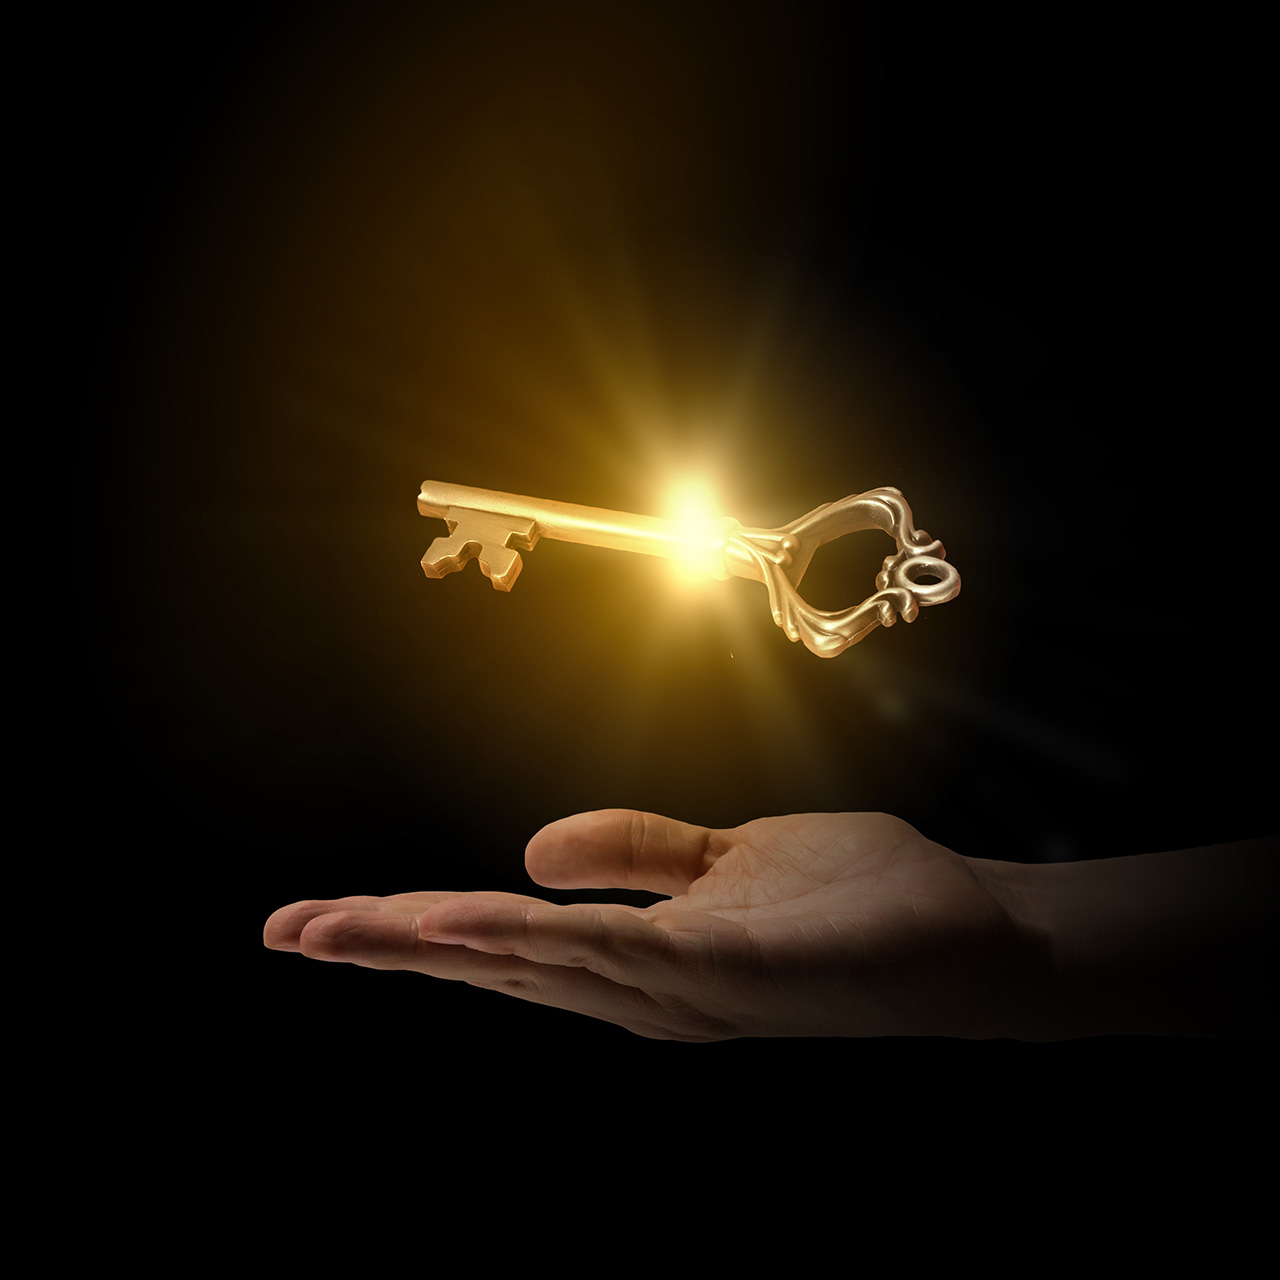 """Does """"Golden Key"""" actually solve encryption issues? 